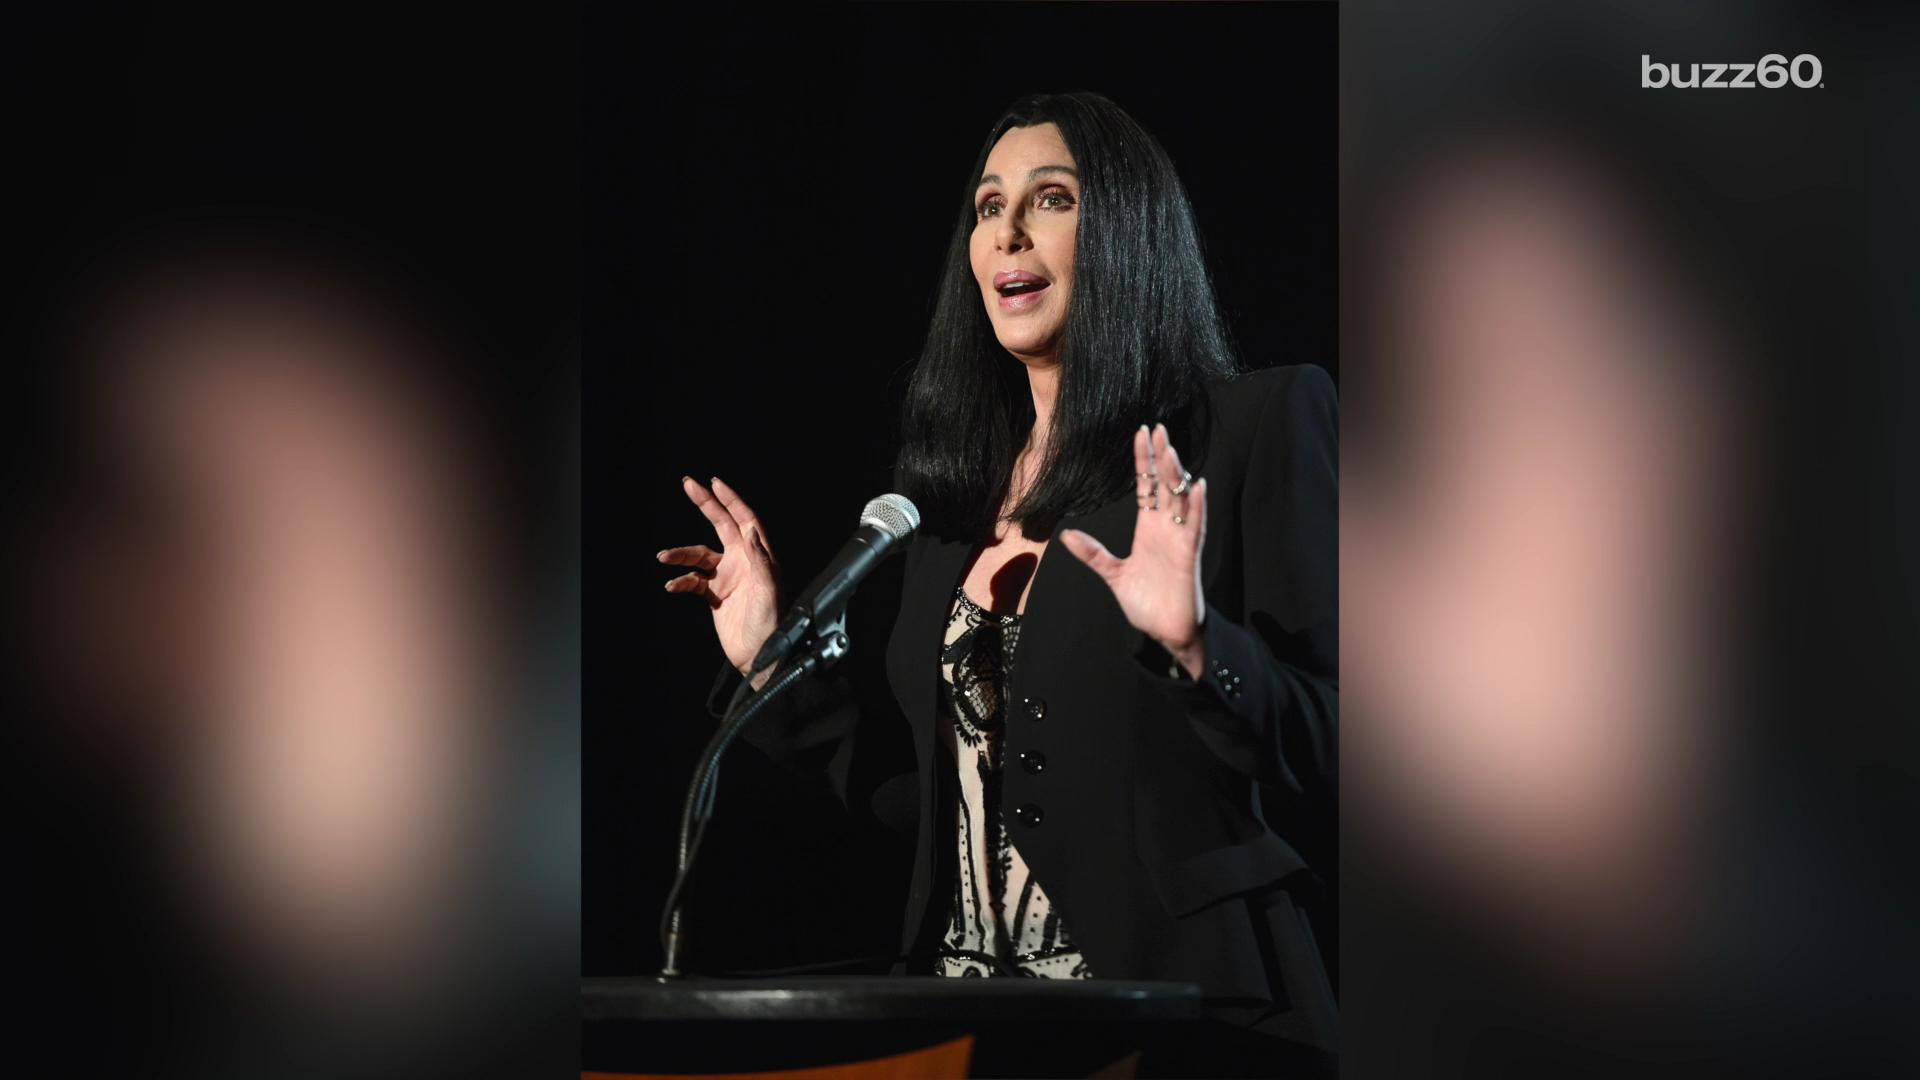 Cher believes in helping Flint and donates 181,000 bottles of water